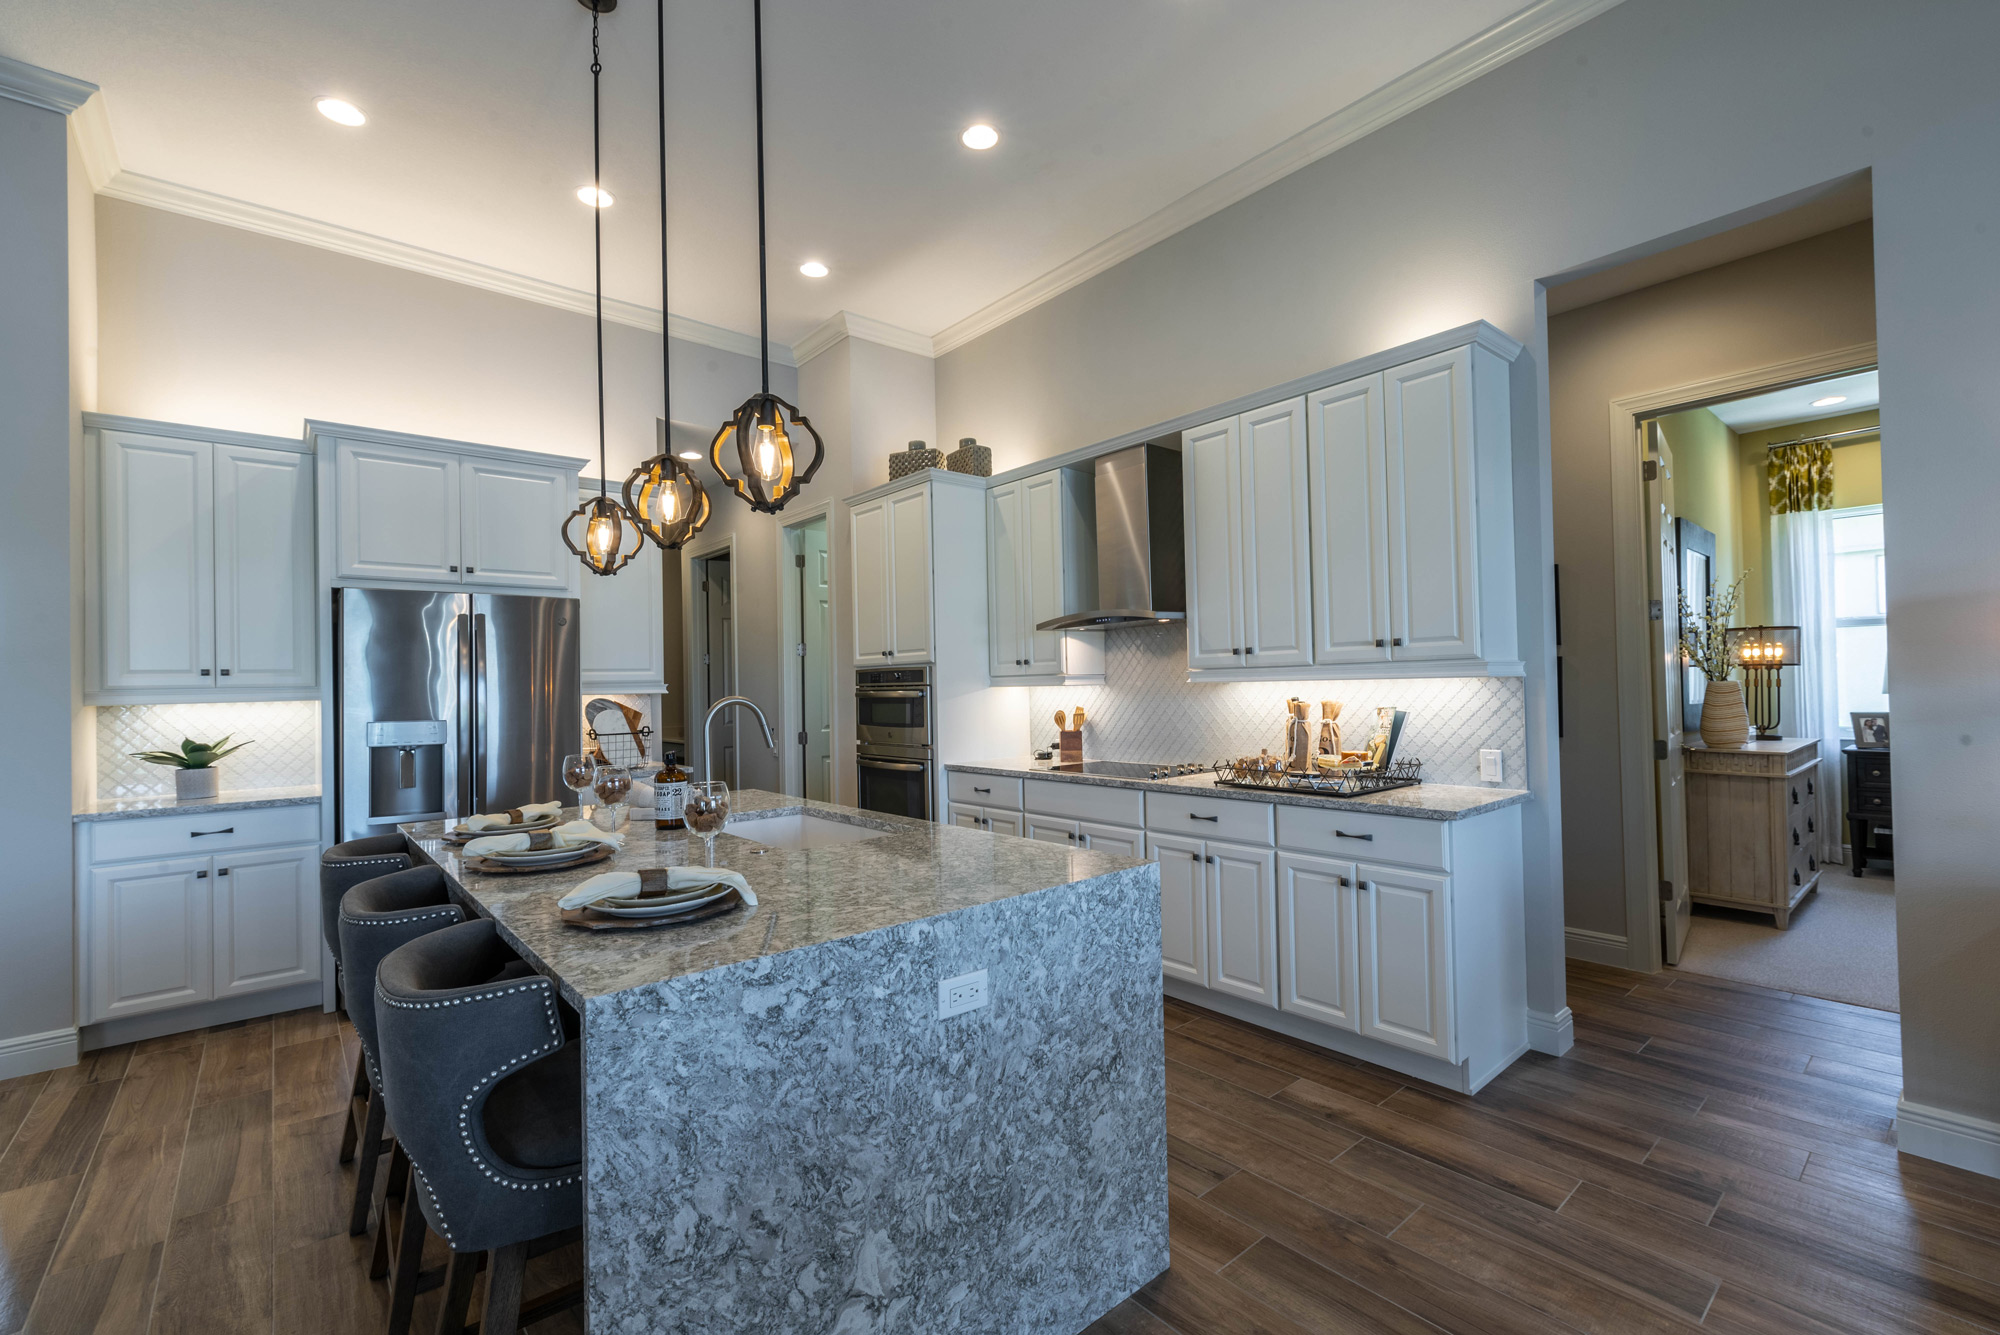 Top Custom Upgrades for Modern Luxury Kitchens - Sam ... on Modern Kitchens  id=67875